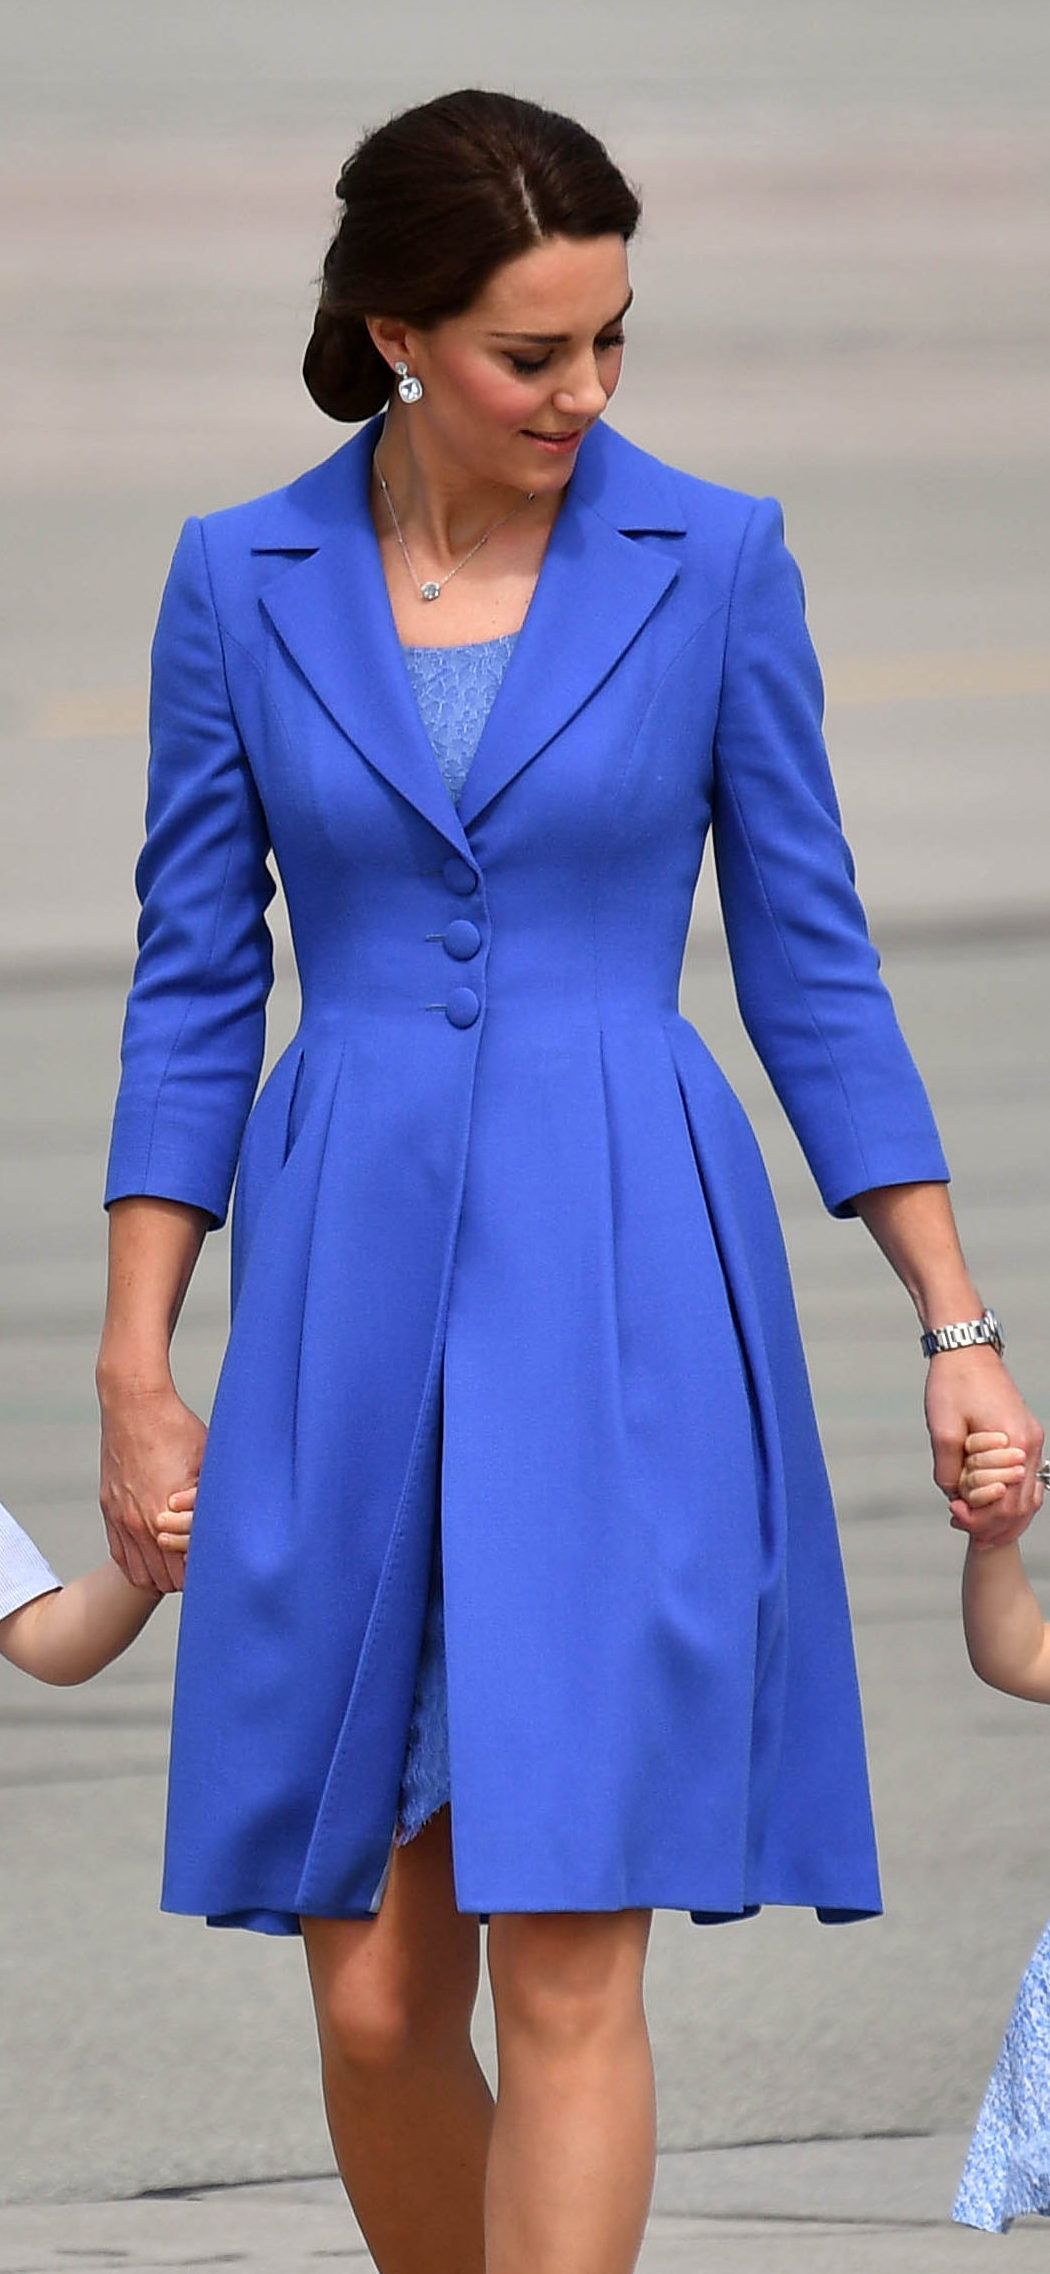 Image ©Licensed to i-Images Picture Agency. 19/07/2017. Warsaw, Poland. Royal Tour of Poland and Germany-Day Three. Prince William, The Duke of Cambridge, joined by his wife Catherine, The Duchess of Cambridge with their children Prince George and Princess  Charlotte depart Warsaw airport, Poland after a three day visit,  for Berlin, Germany, for the next stage of their European tour.  Picture by Andrew Parsons / i-Images